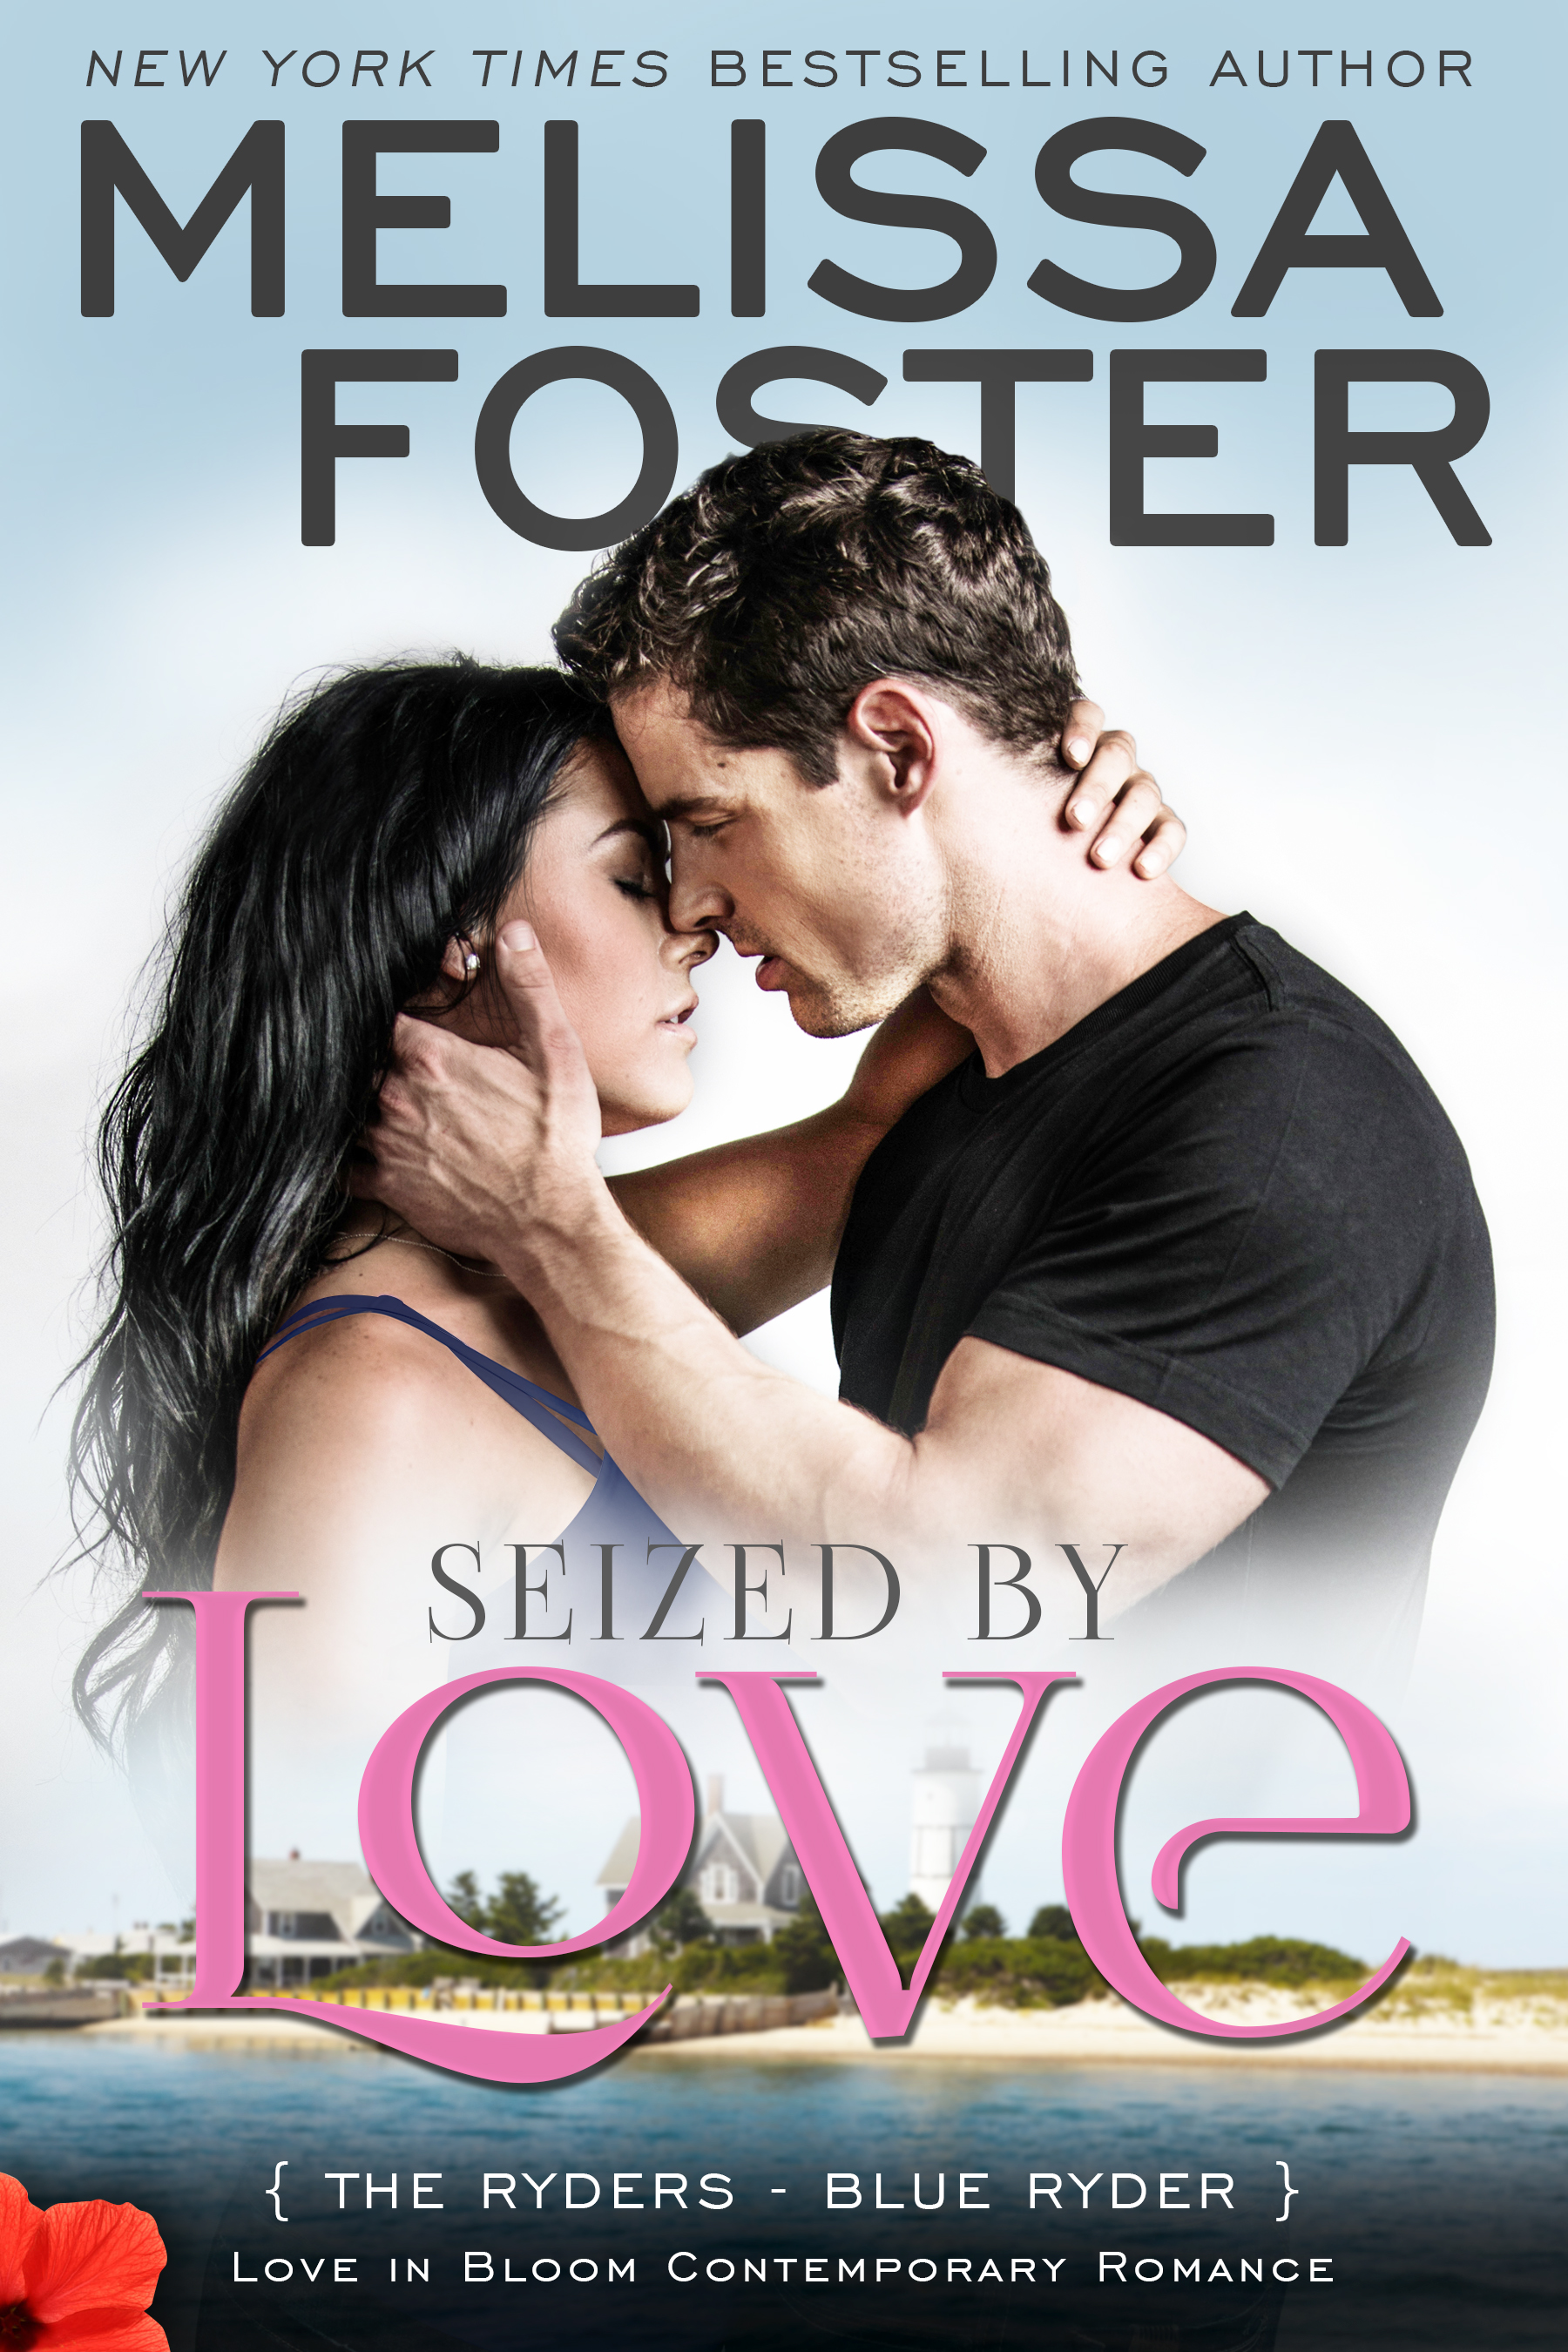 Rescued by Love: Jake Ryder (Love in Bloom: The Ryders Book 4)